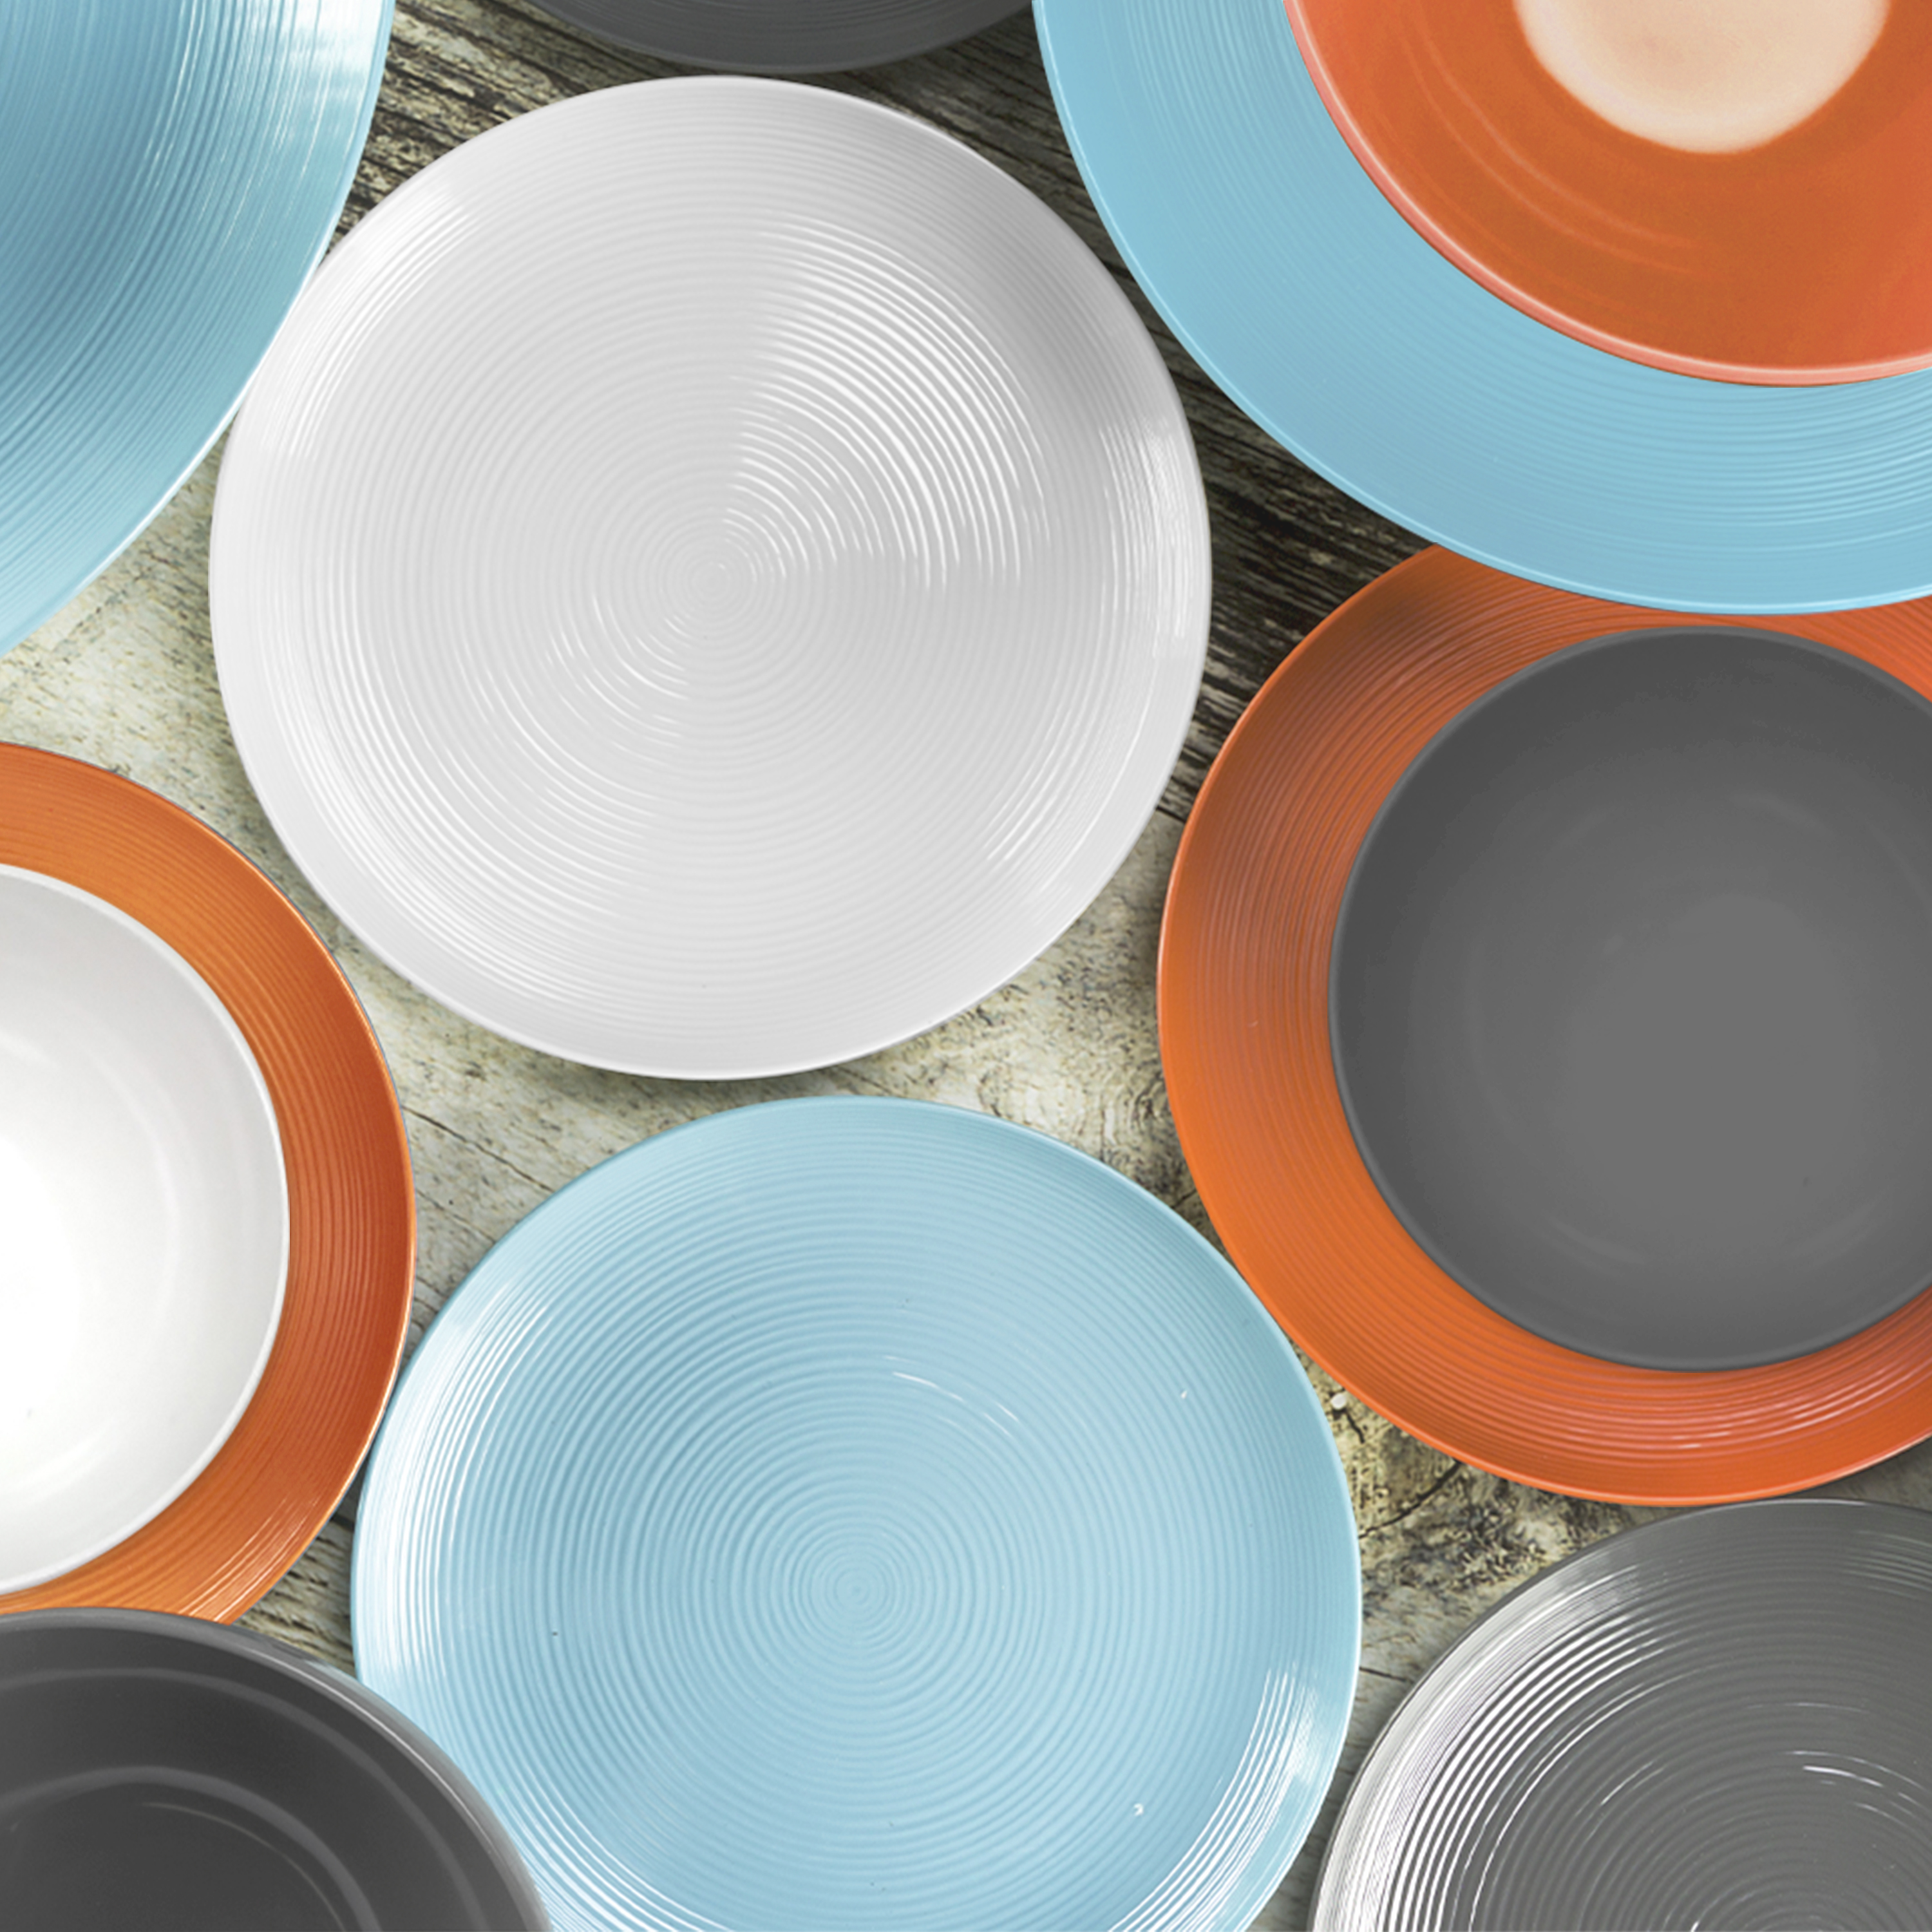 American Conventional Plate & Bowl Sets, Orange, 12-piece set slideshow image 10